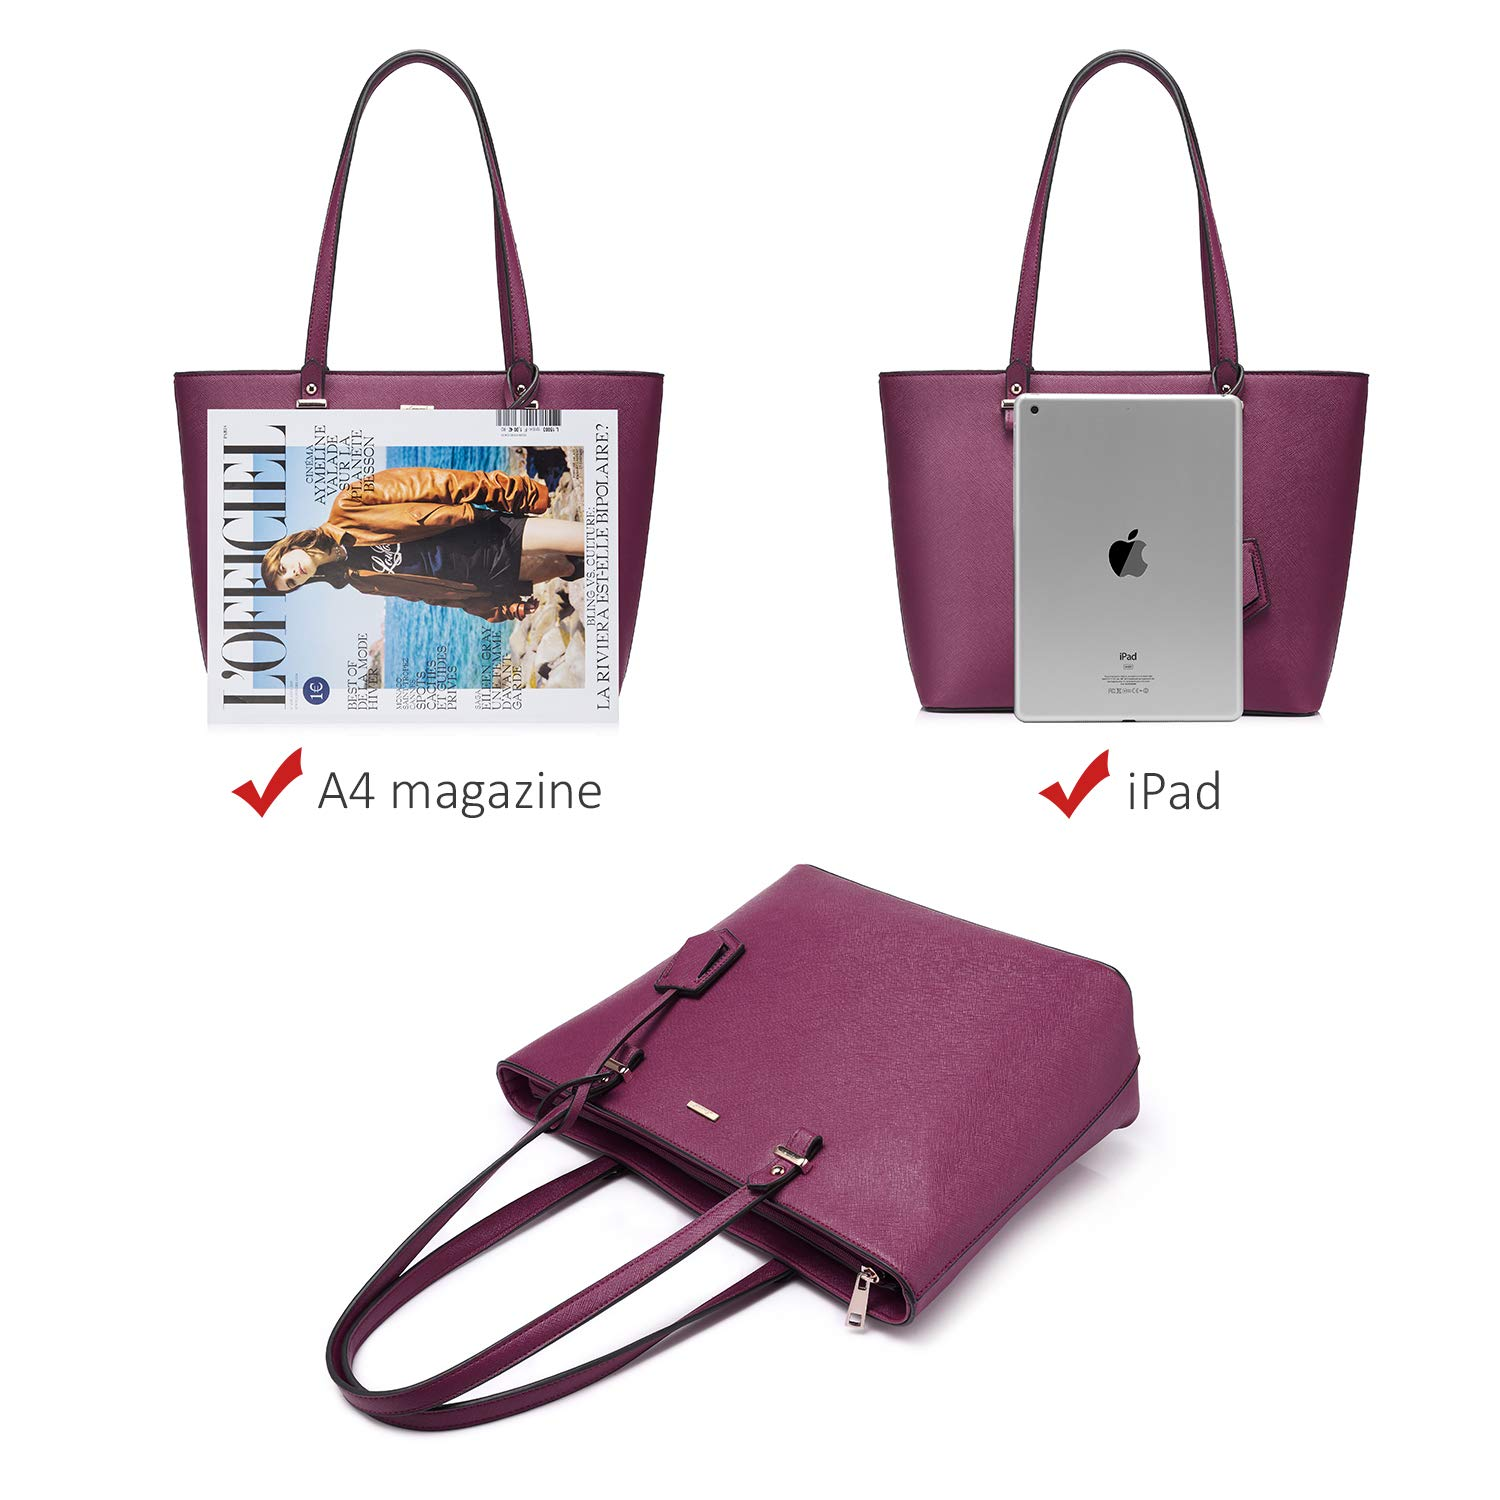 Handbags for Women Tote Bag Shoulder Bags Fashion Satchel Top Handle Structured Purse Set Designer Purses 3PCS PU Stand Gift Sexy Purple by LOVEVOOK (Image #3)